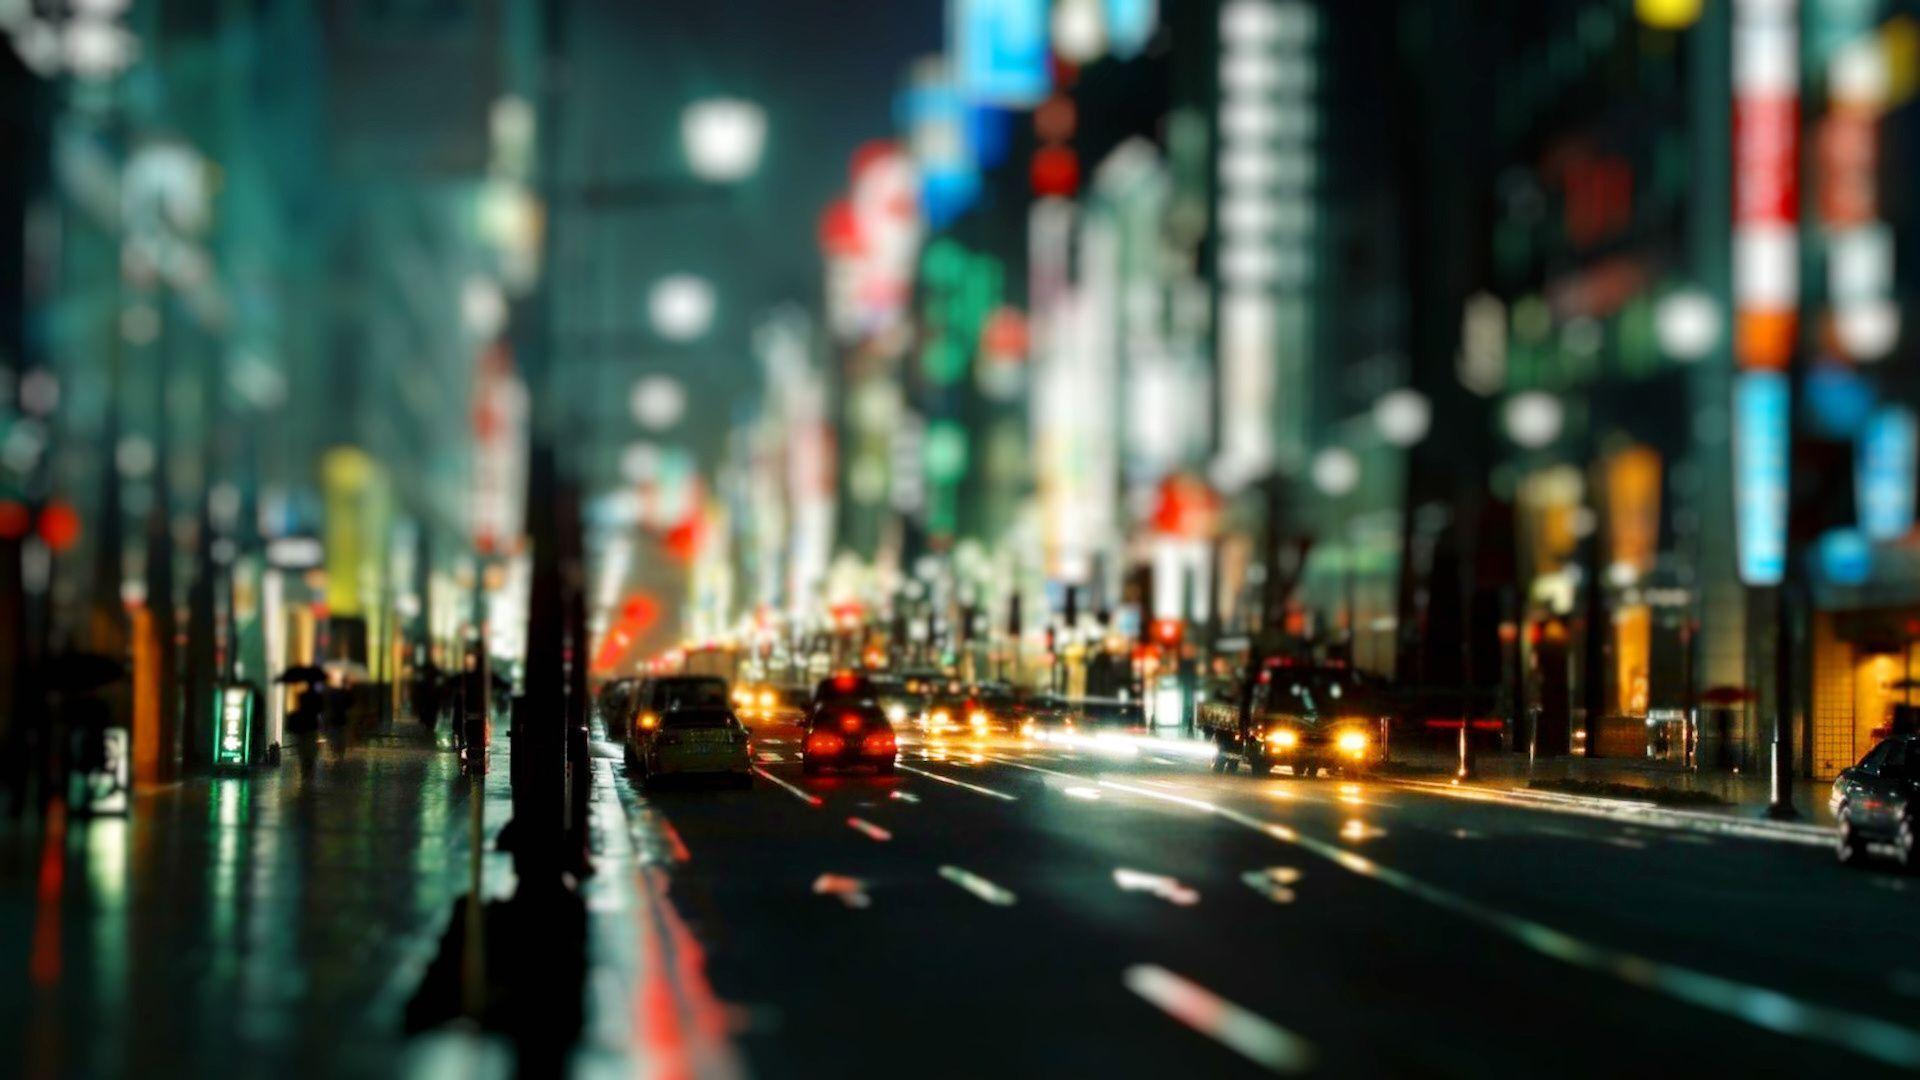 Street lights, Abstract, City, Colours, Cool, Evening, Lights